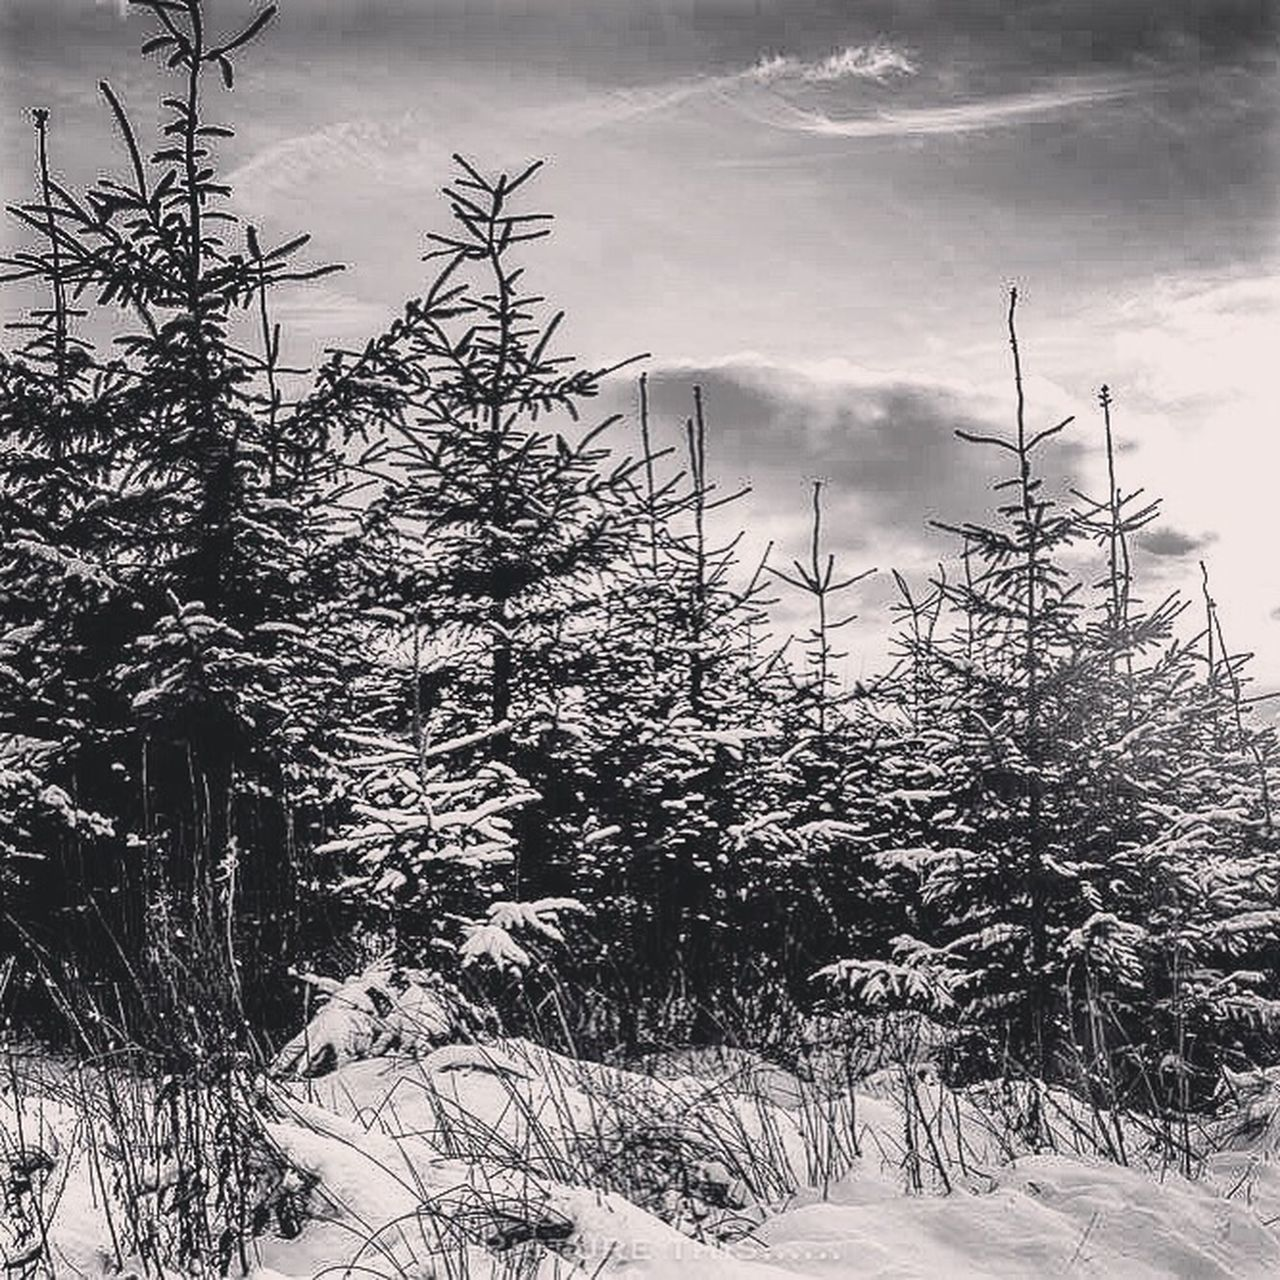 winter, snow, cold temperature, tree, nature, weather, no people, outdoors, day, cloud - sky, plant, growth, landscape, forest, beauty in nature, scenics, rural scene, sky